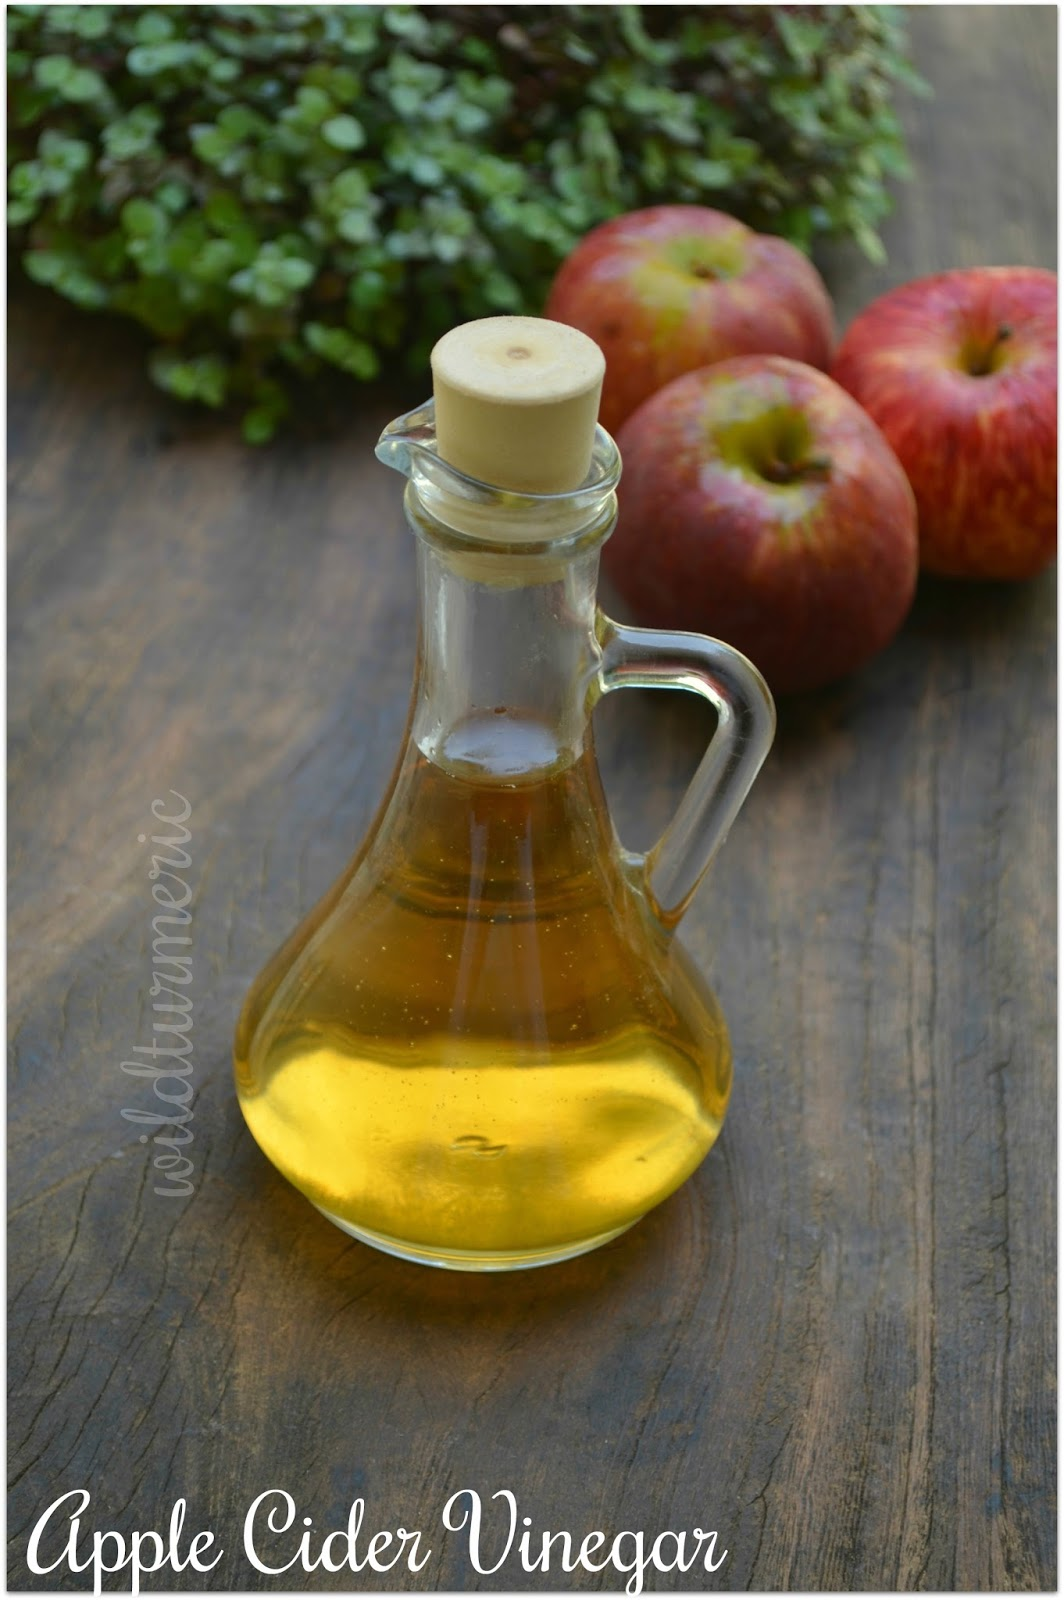 10 Top Reasons To Drink A Tbsp Of Apple Cider Vinegar Daily